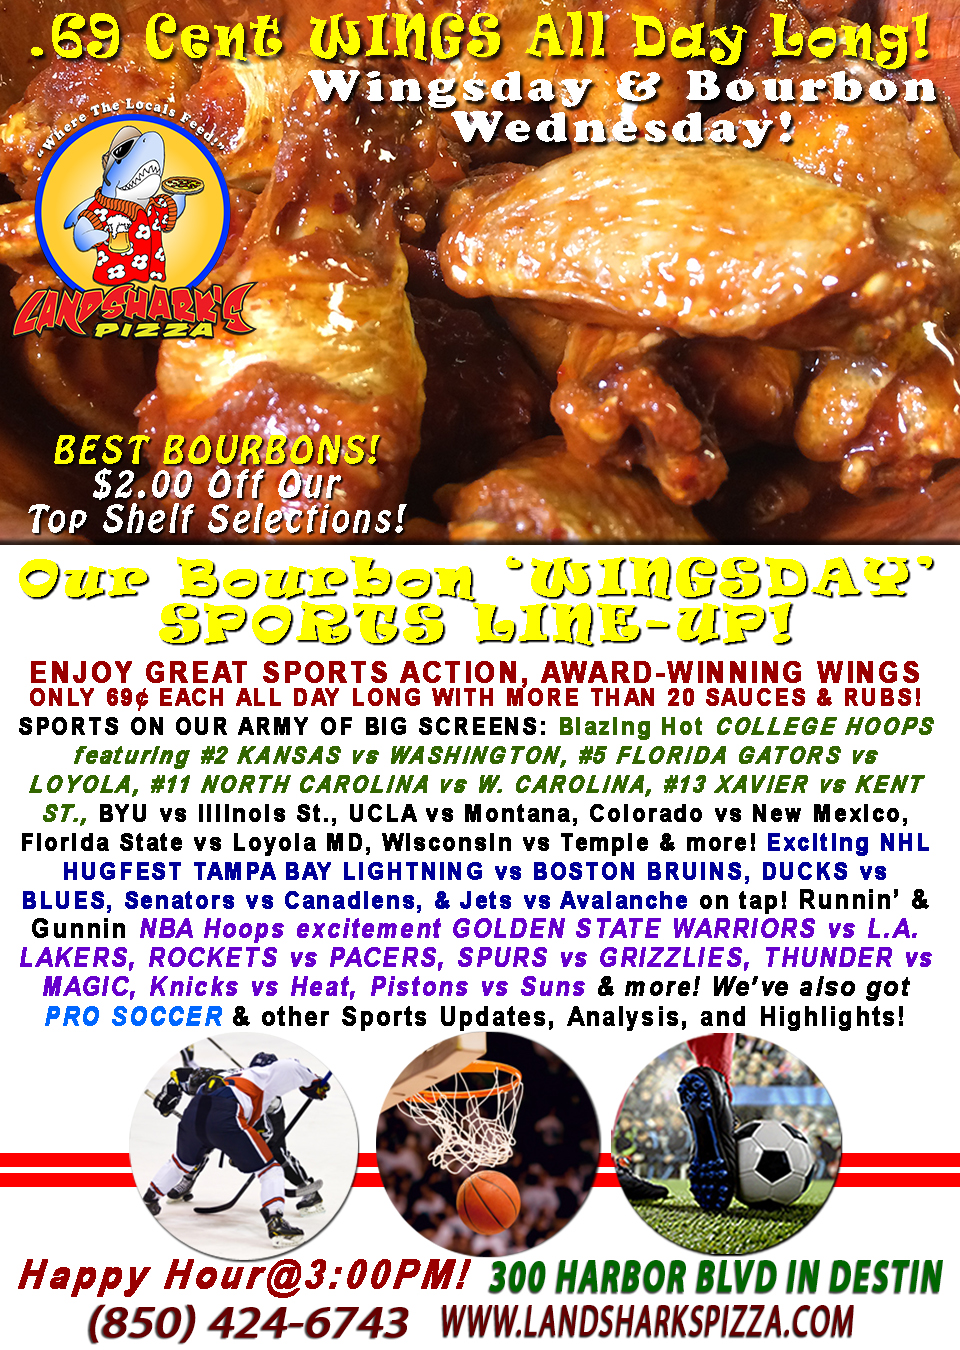 Tasty WING WEDNESDAY NCAA #2 KANSAS vs WASHINGTON & Wings 69¢ each ALL DAY & $2 OFF ALL BOURBONS!